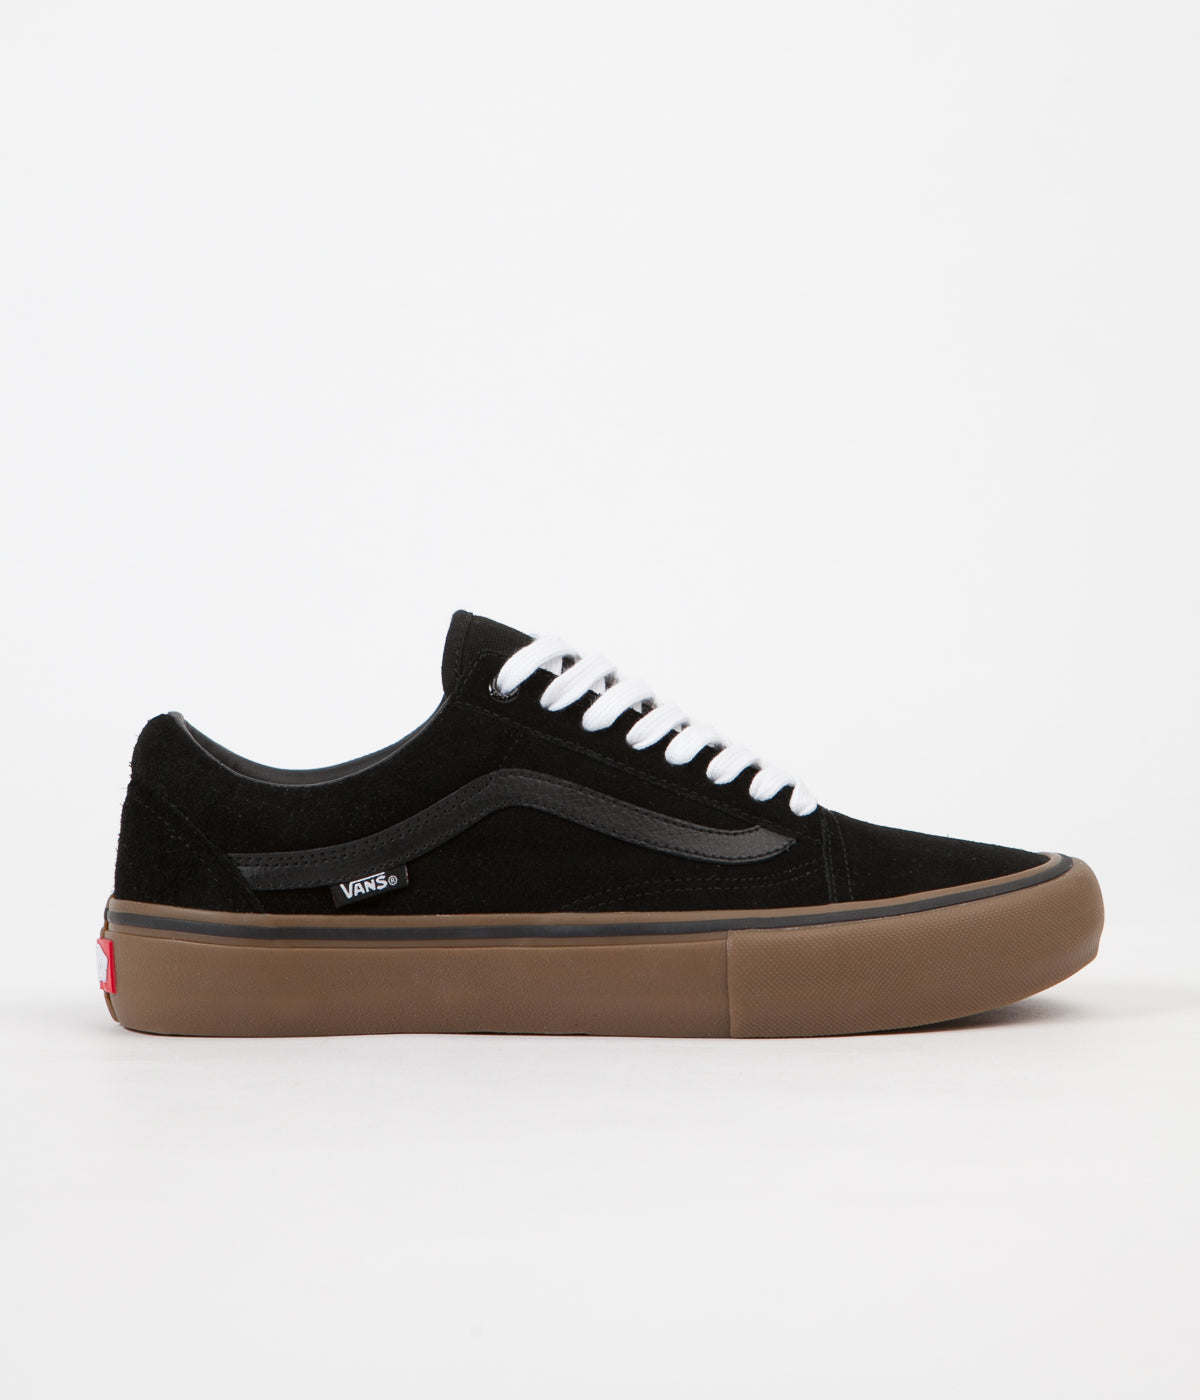 5b6da91e77dd Vans Old Skool Pro Shoes - Black   Gum   Gum